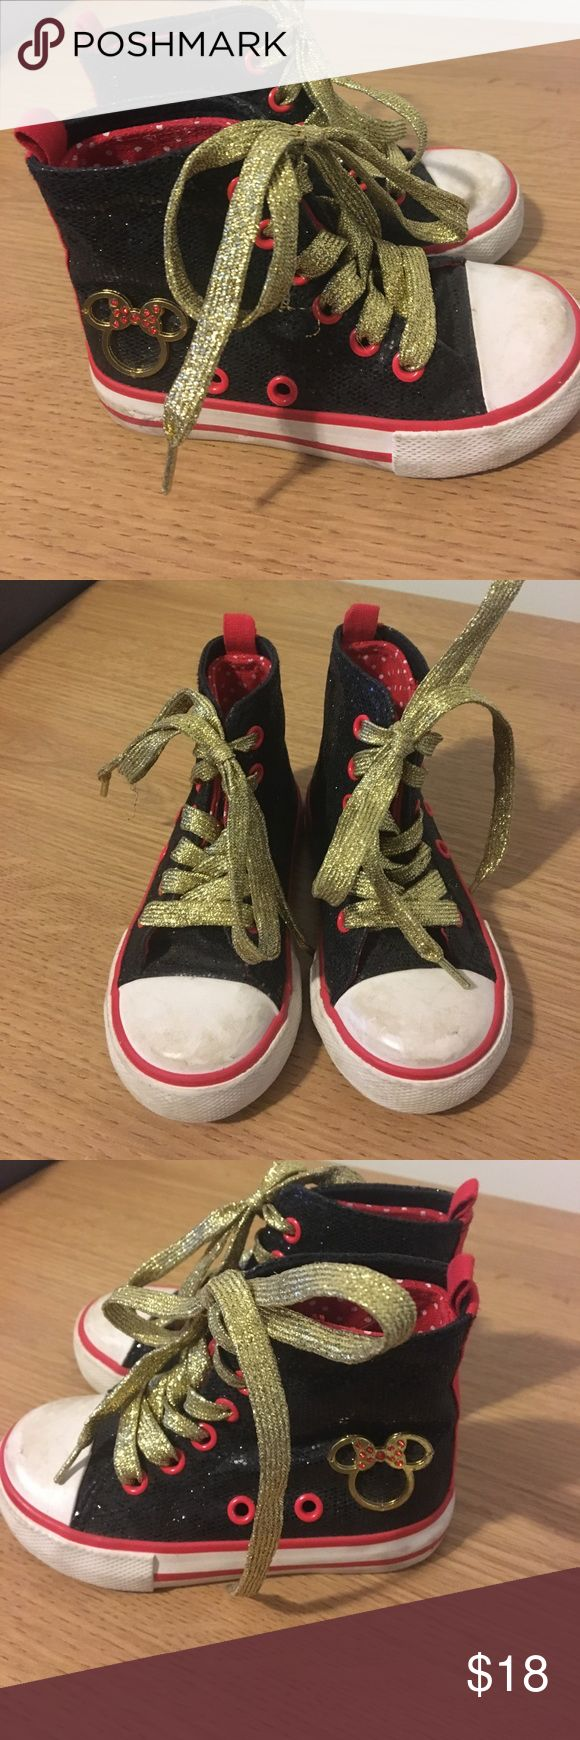 Disney Minnie Mouse size 7 girl's tennis shoes Really cute black, white, red, and gold Minnie Mouse tennis shoes by Disney. Gold laces, gold Minnie Mouse on the side. Adorable! Come from a smoke-free home. Disney Shoes Sneakers